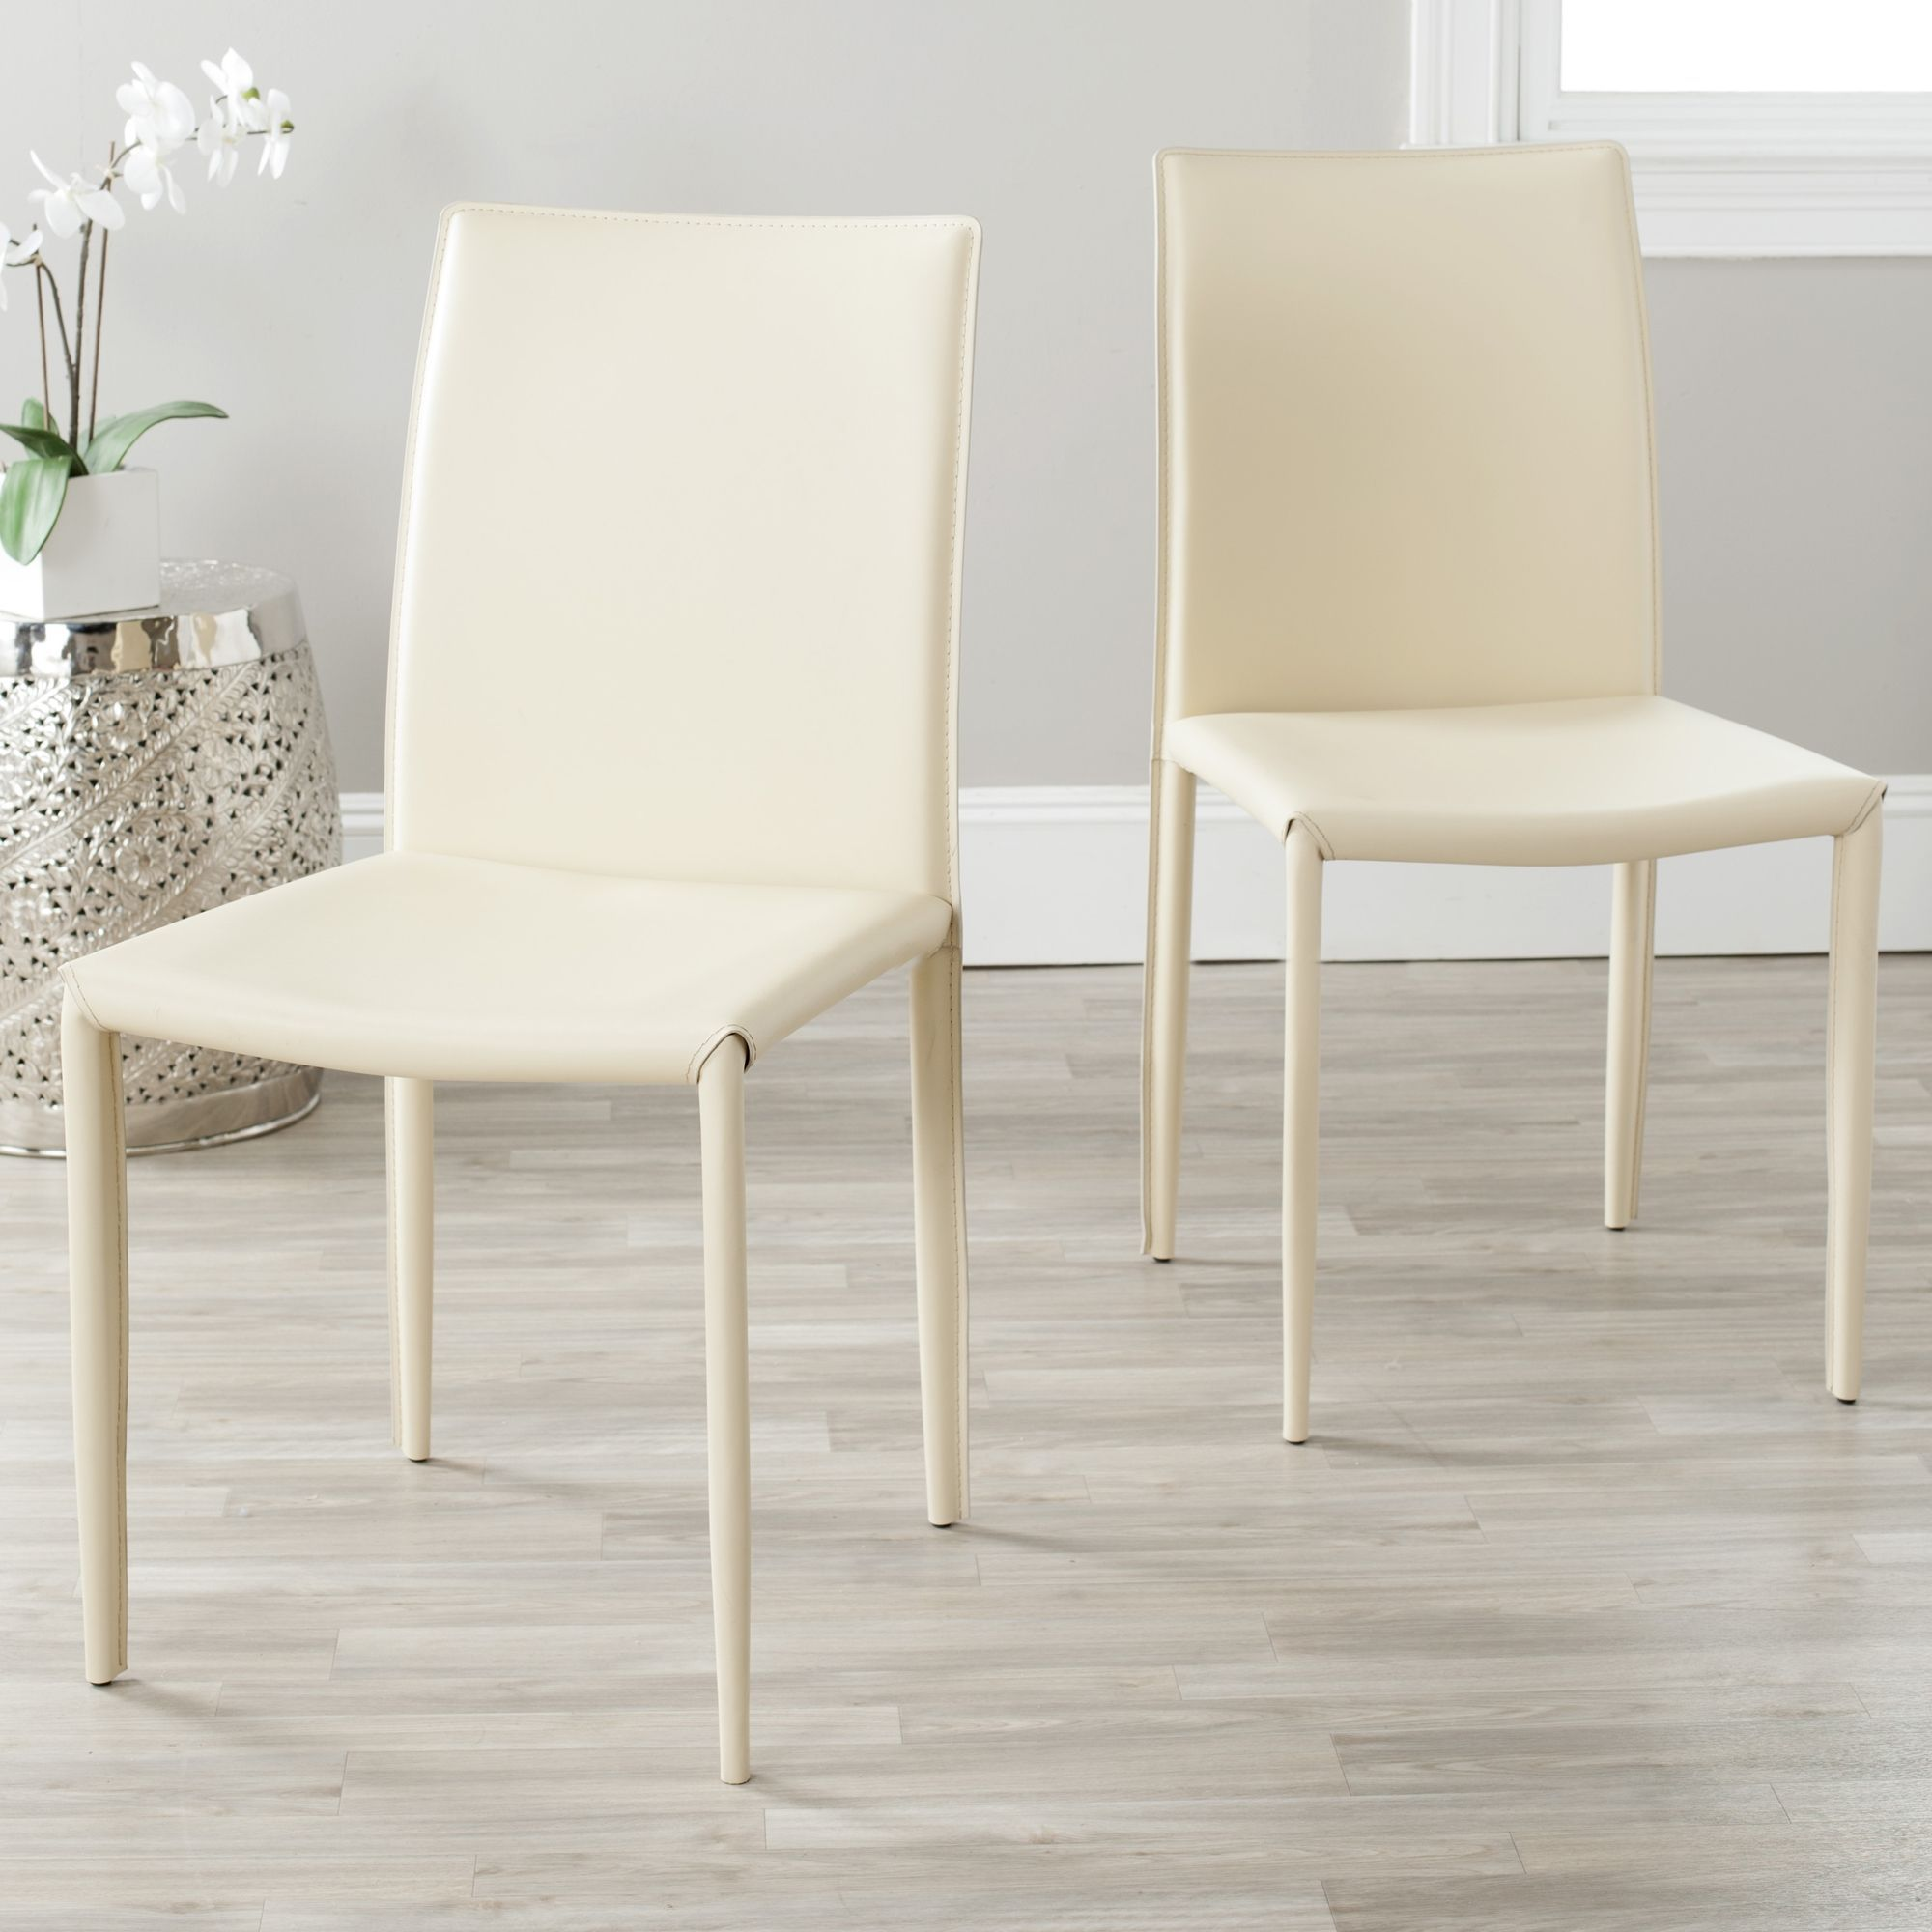 Ivory Dining Room Chairs Mesmerizing Safavieh Midcentury Dining Jazzy Bonded Leather Cream Dining Review